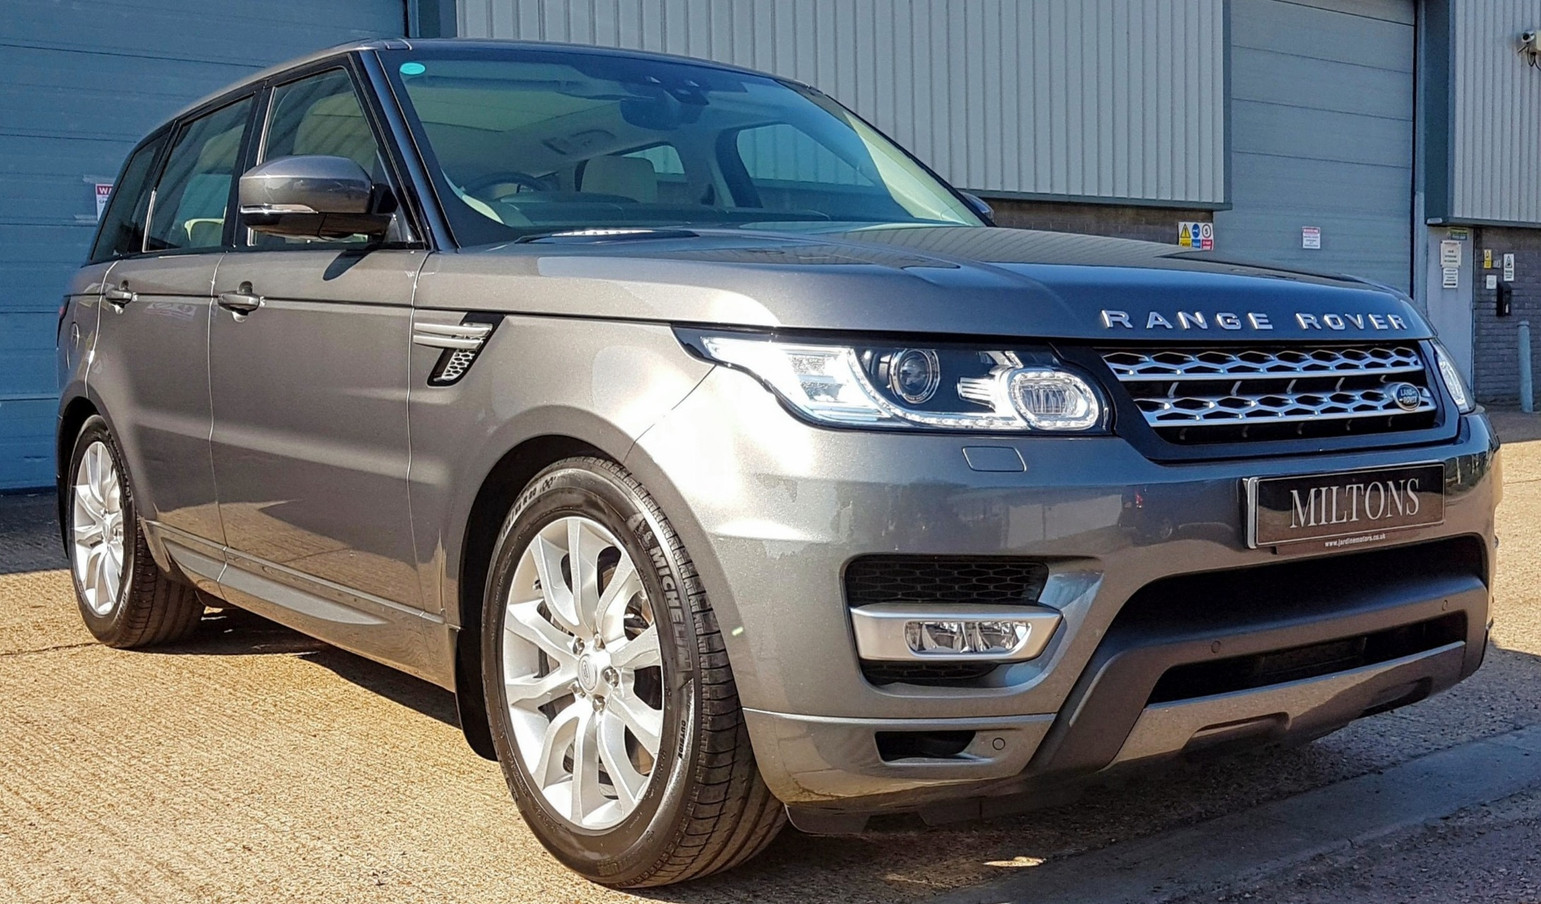 Range Rover Ceramic Coating.jpg